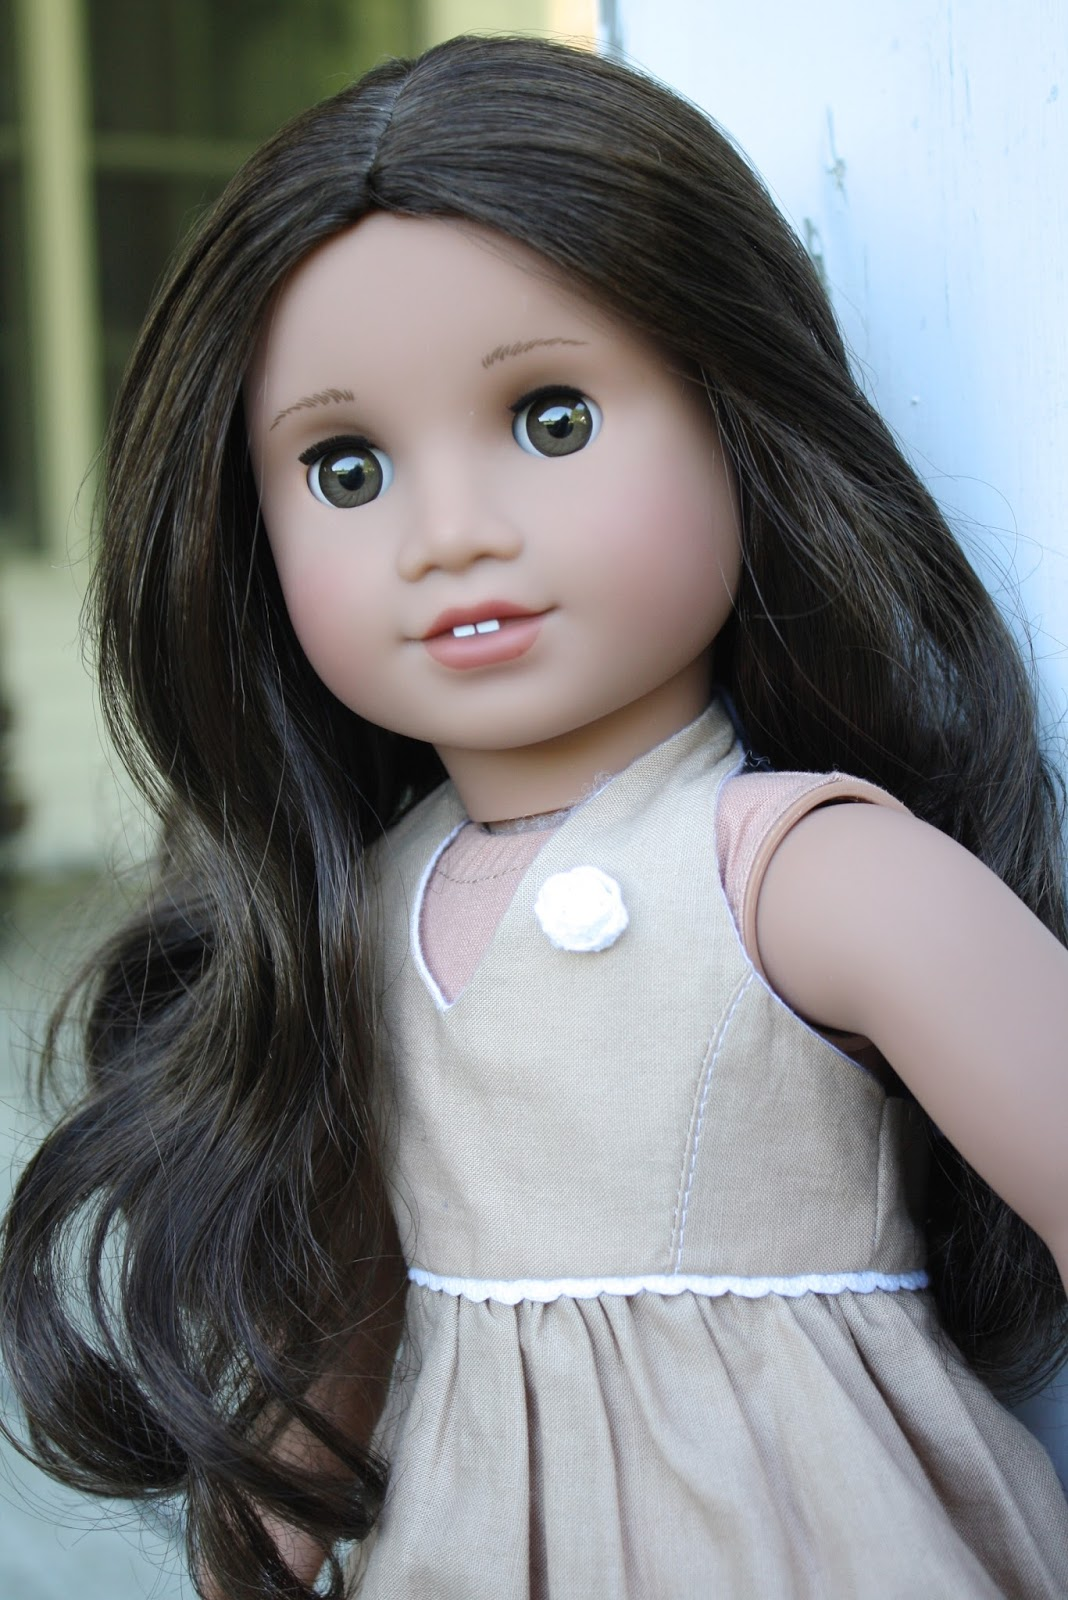 Pippaloo For Dolls: MY CUSTOM AMERICAN GIRL DOLLS